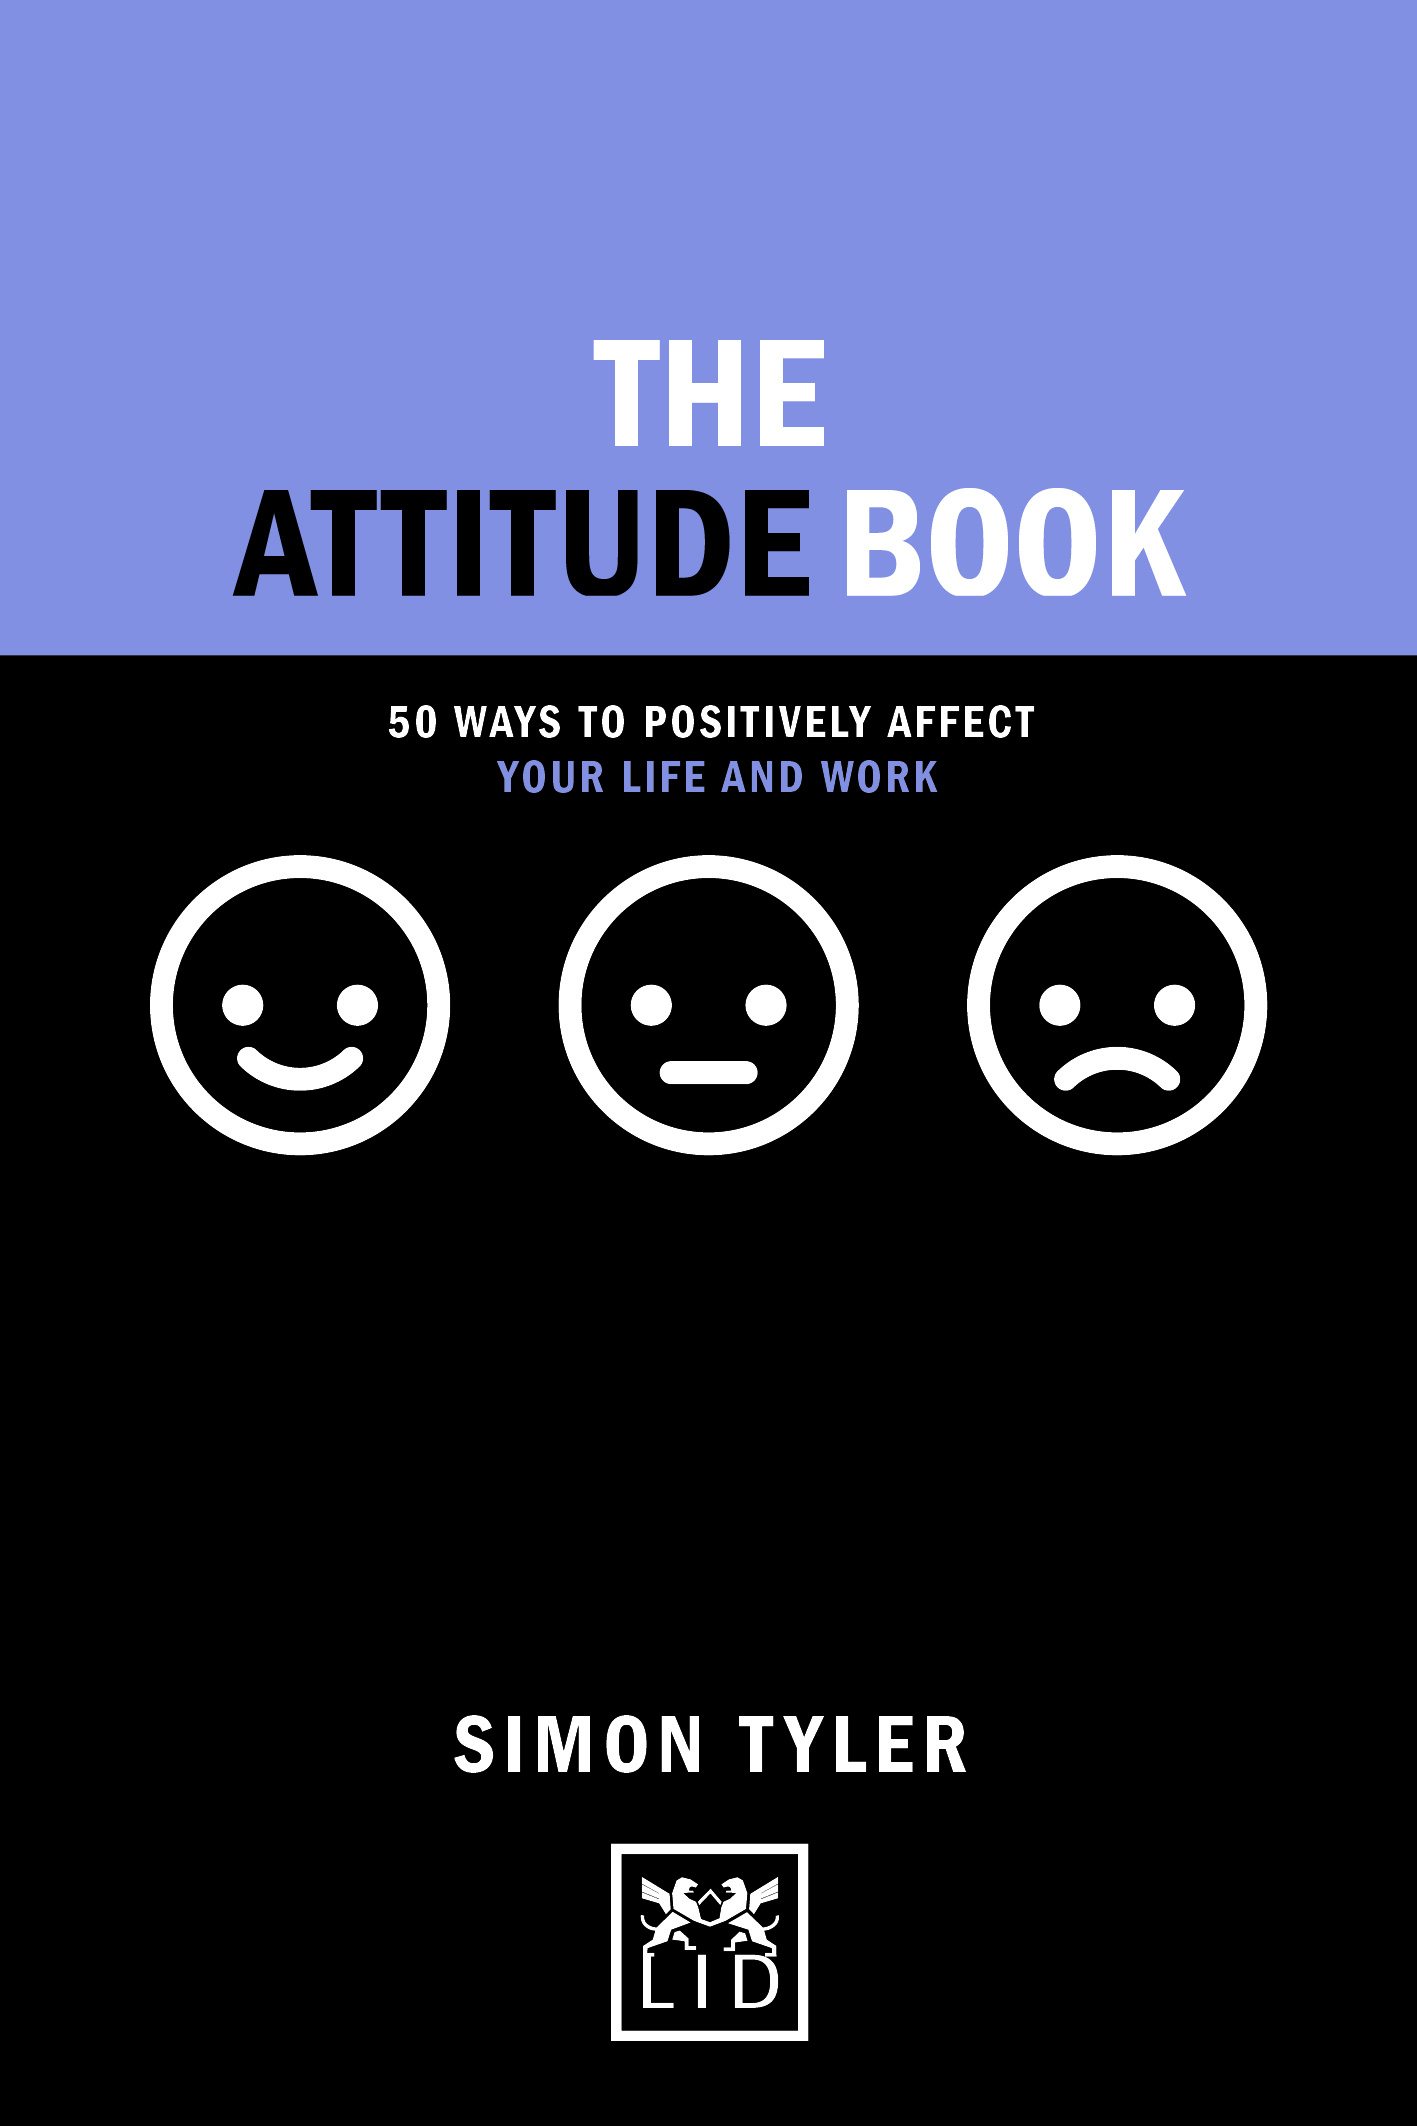 Shortlisted for the 2019 Business Book Awards - Best Short Book.You can listen to one of Simon's interviews here or contact us to book Simon for an Attitude Boost for you and your team. - Also available now:Flipping Your Attitude - Simon Tyler will work with you and your team to understand how, by flipping your attitude, you could develop cultural change and drive performance.Contact us to find out more!